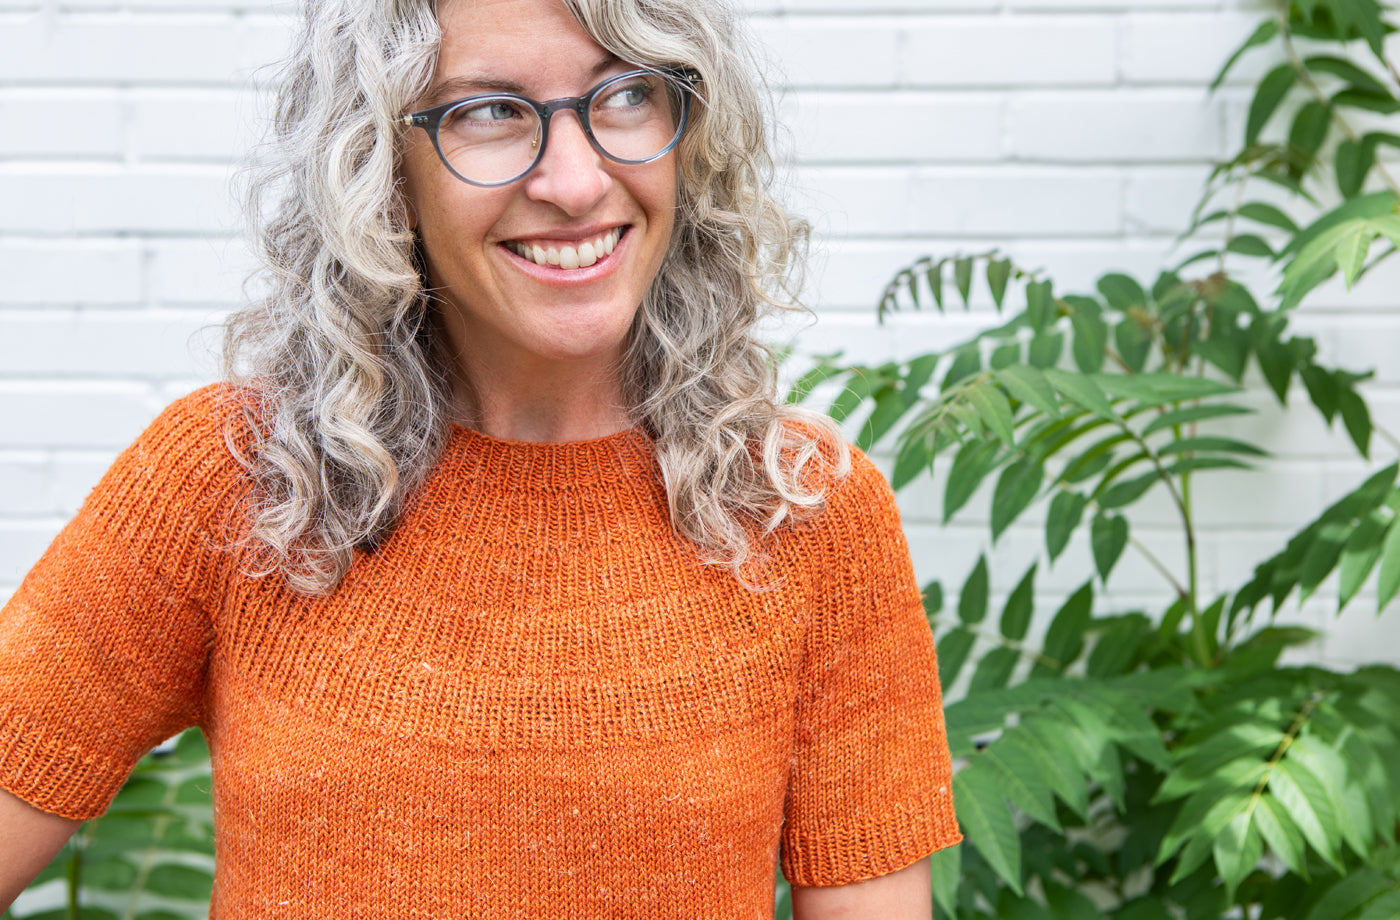 This is an image of a woman wearing an orange short sleeve shirt  standing in front of some greenery and a white brick wall.